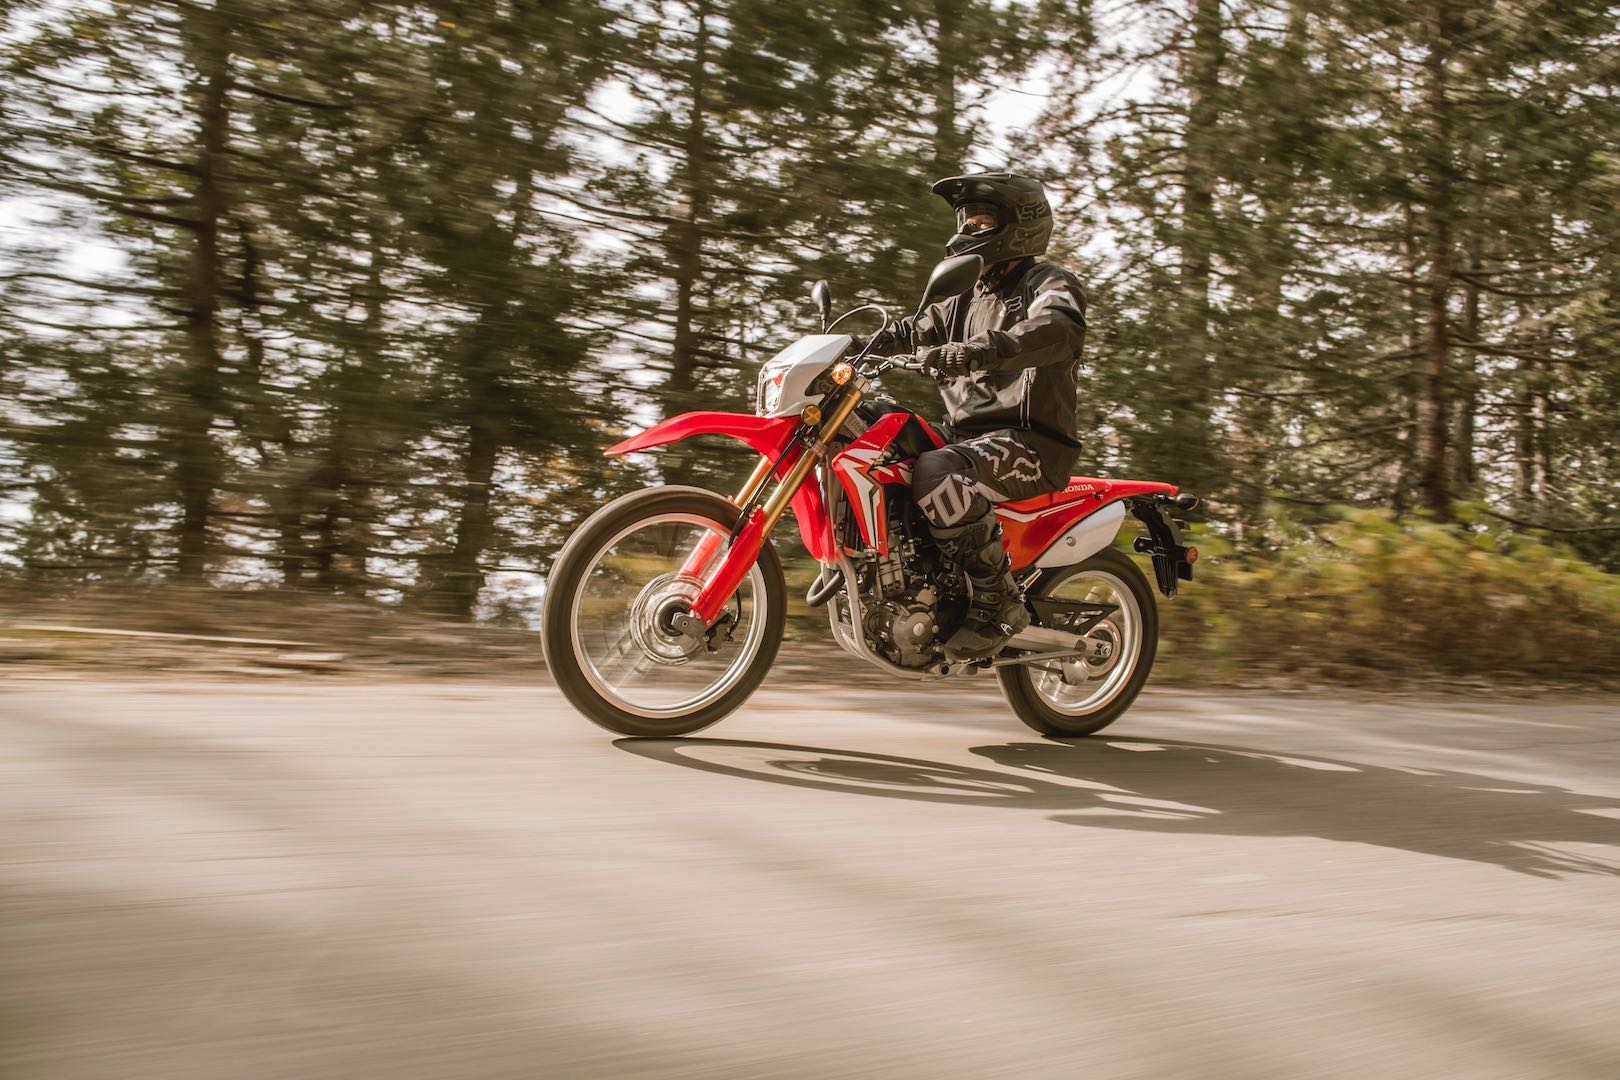 2017 honda crf250l buyer 39 s guide specs price for Honda motorcycle dealers maine